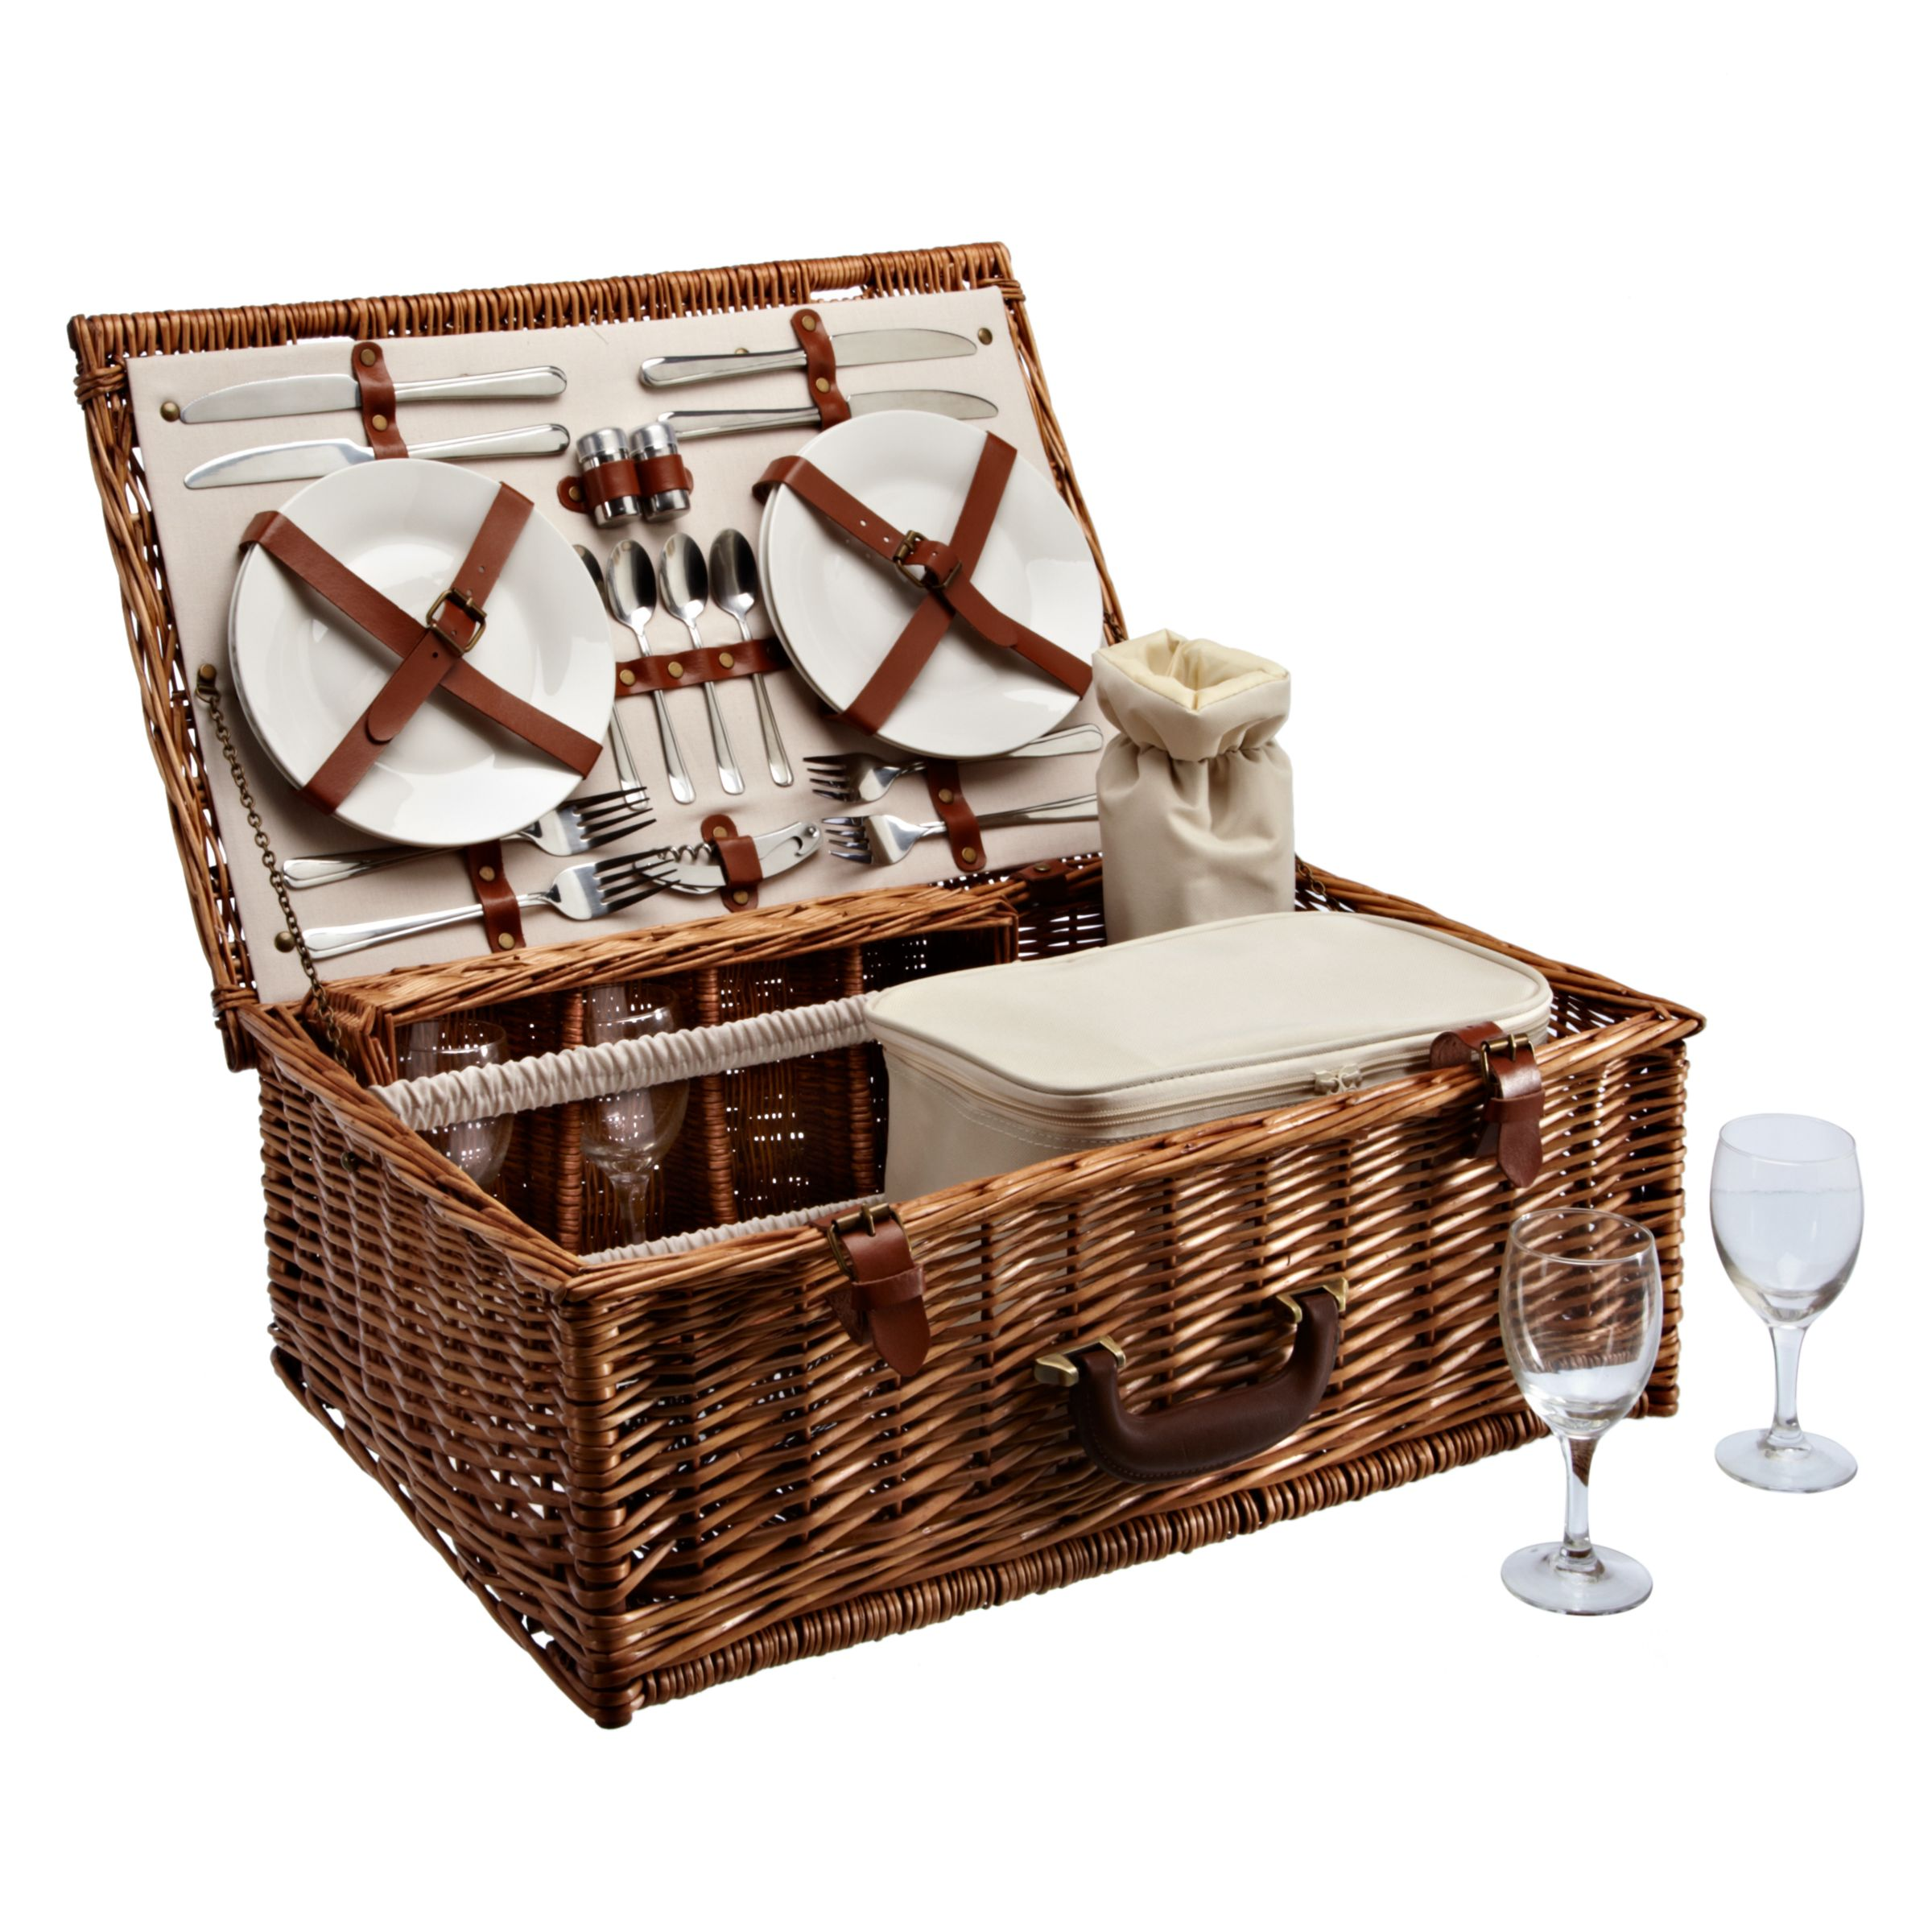 John Lewis Willow Luxury Picnic Hamper, 4 Persons